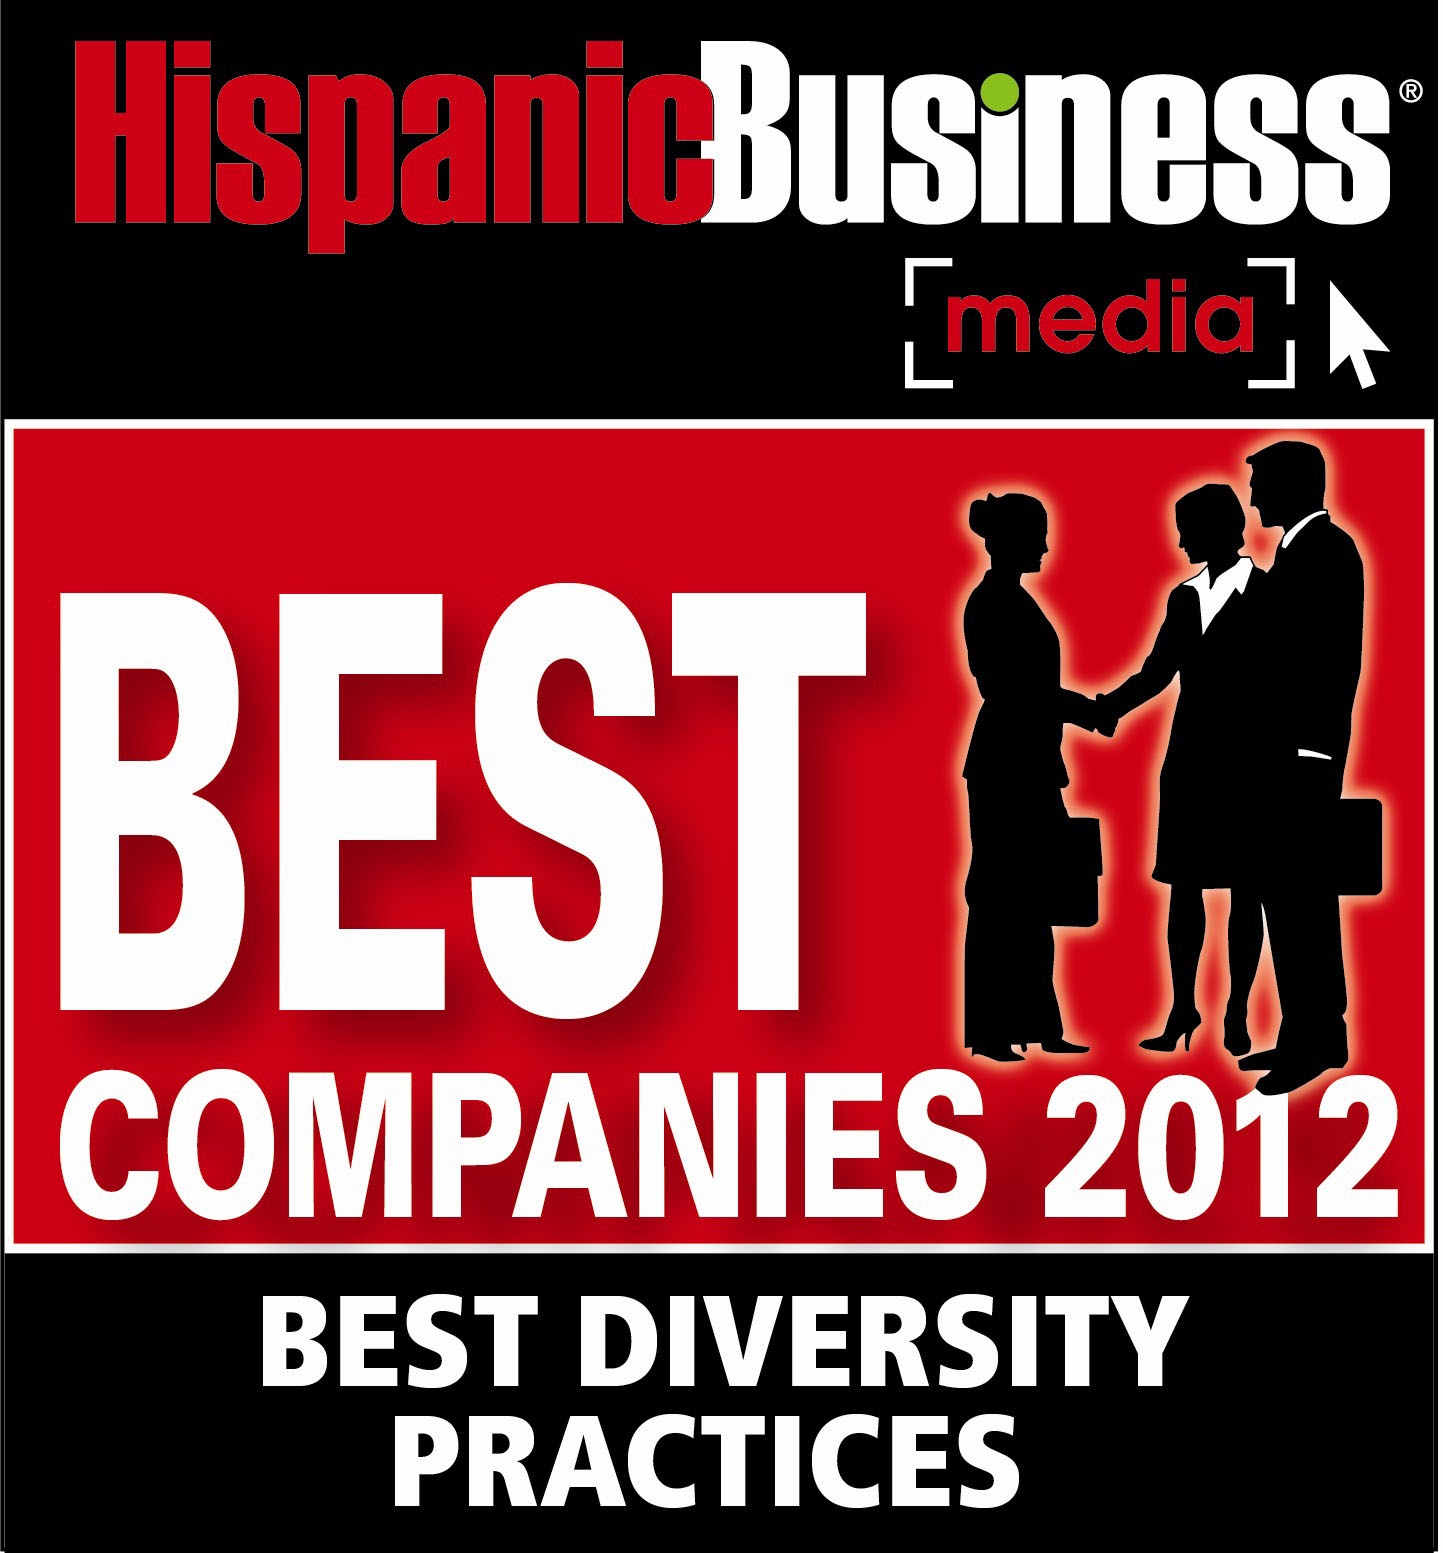 Hispanicbusiness Magazine Names Hilton Worldwide One Of